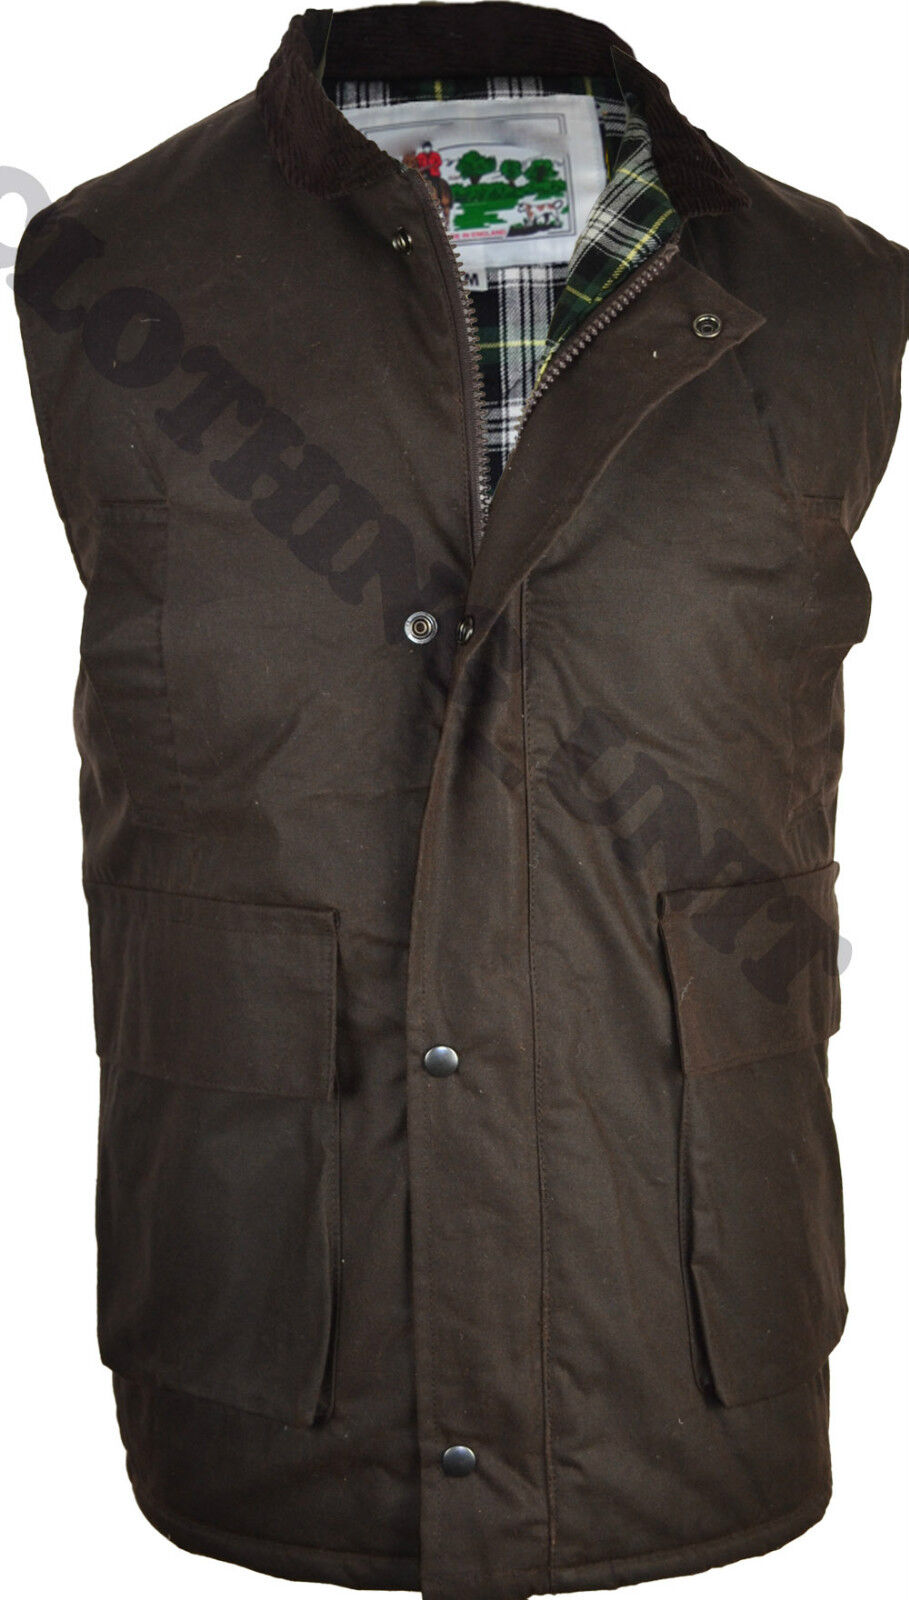 For men's coats and jackets you can rely on come rain or shine, look no further than Cotton Traders. Our collection features padded coats and lightweight jackets, through to men's casual waistcoats when you need an extra layer of warming sophistication.